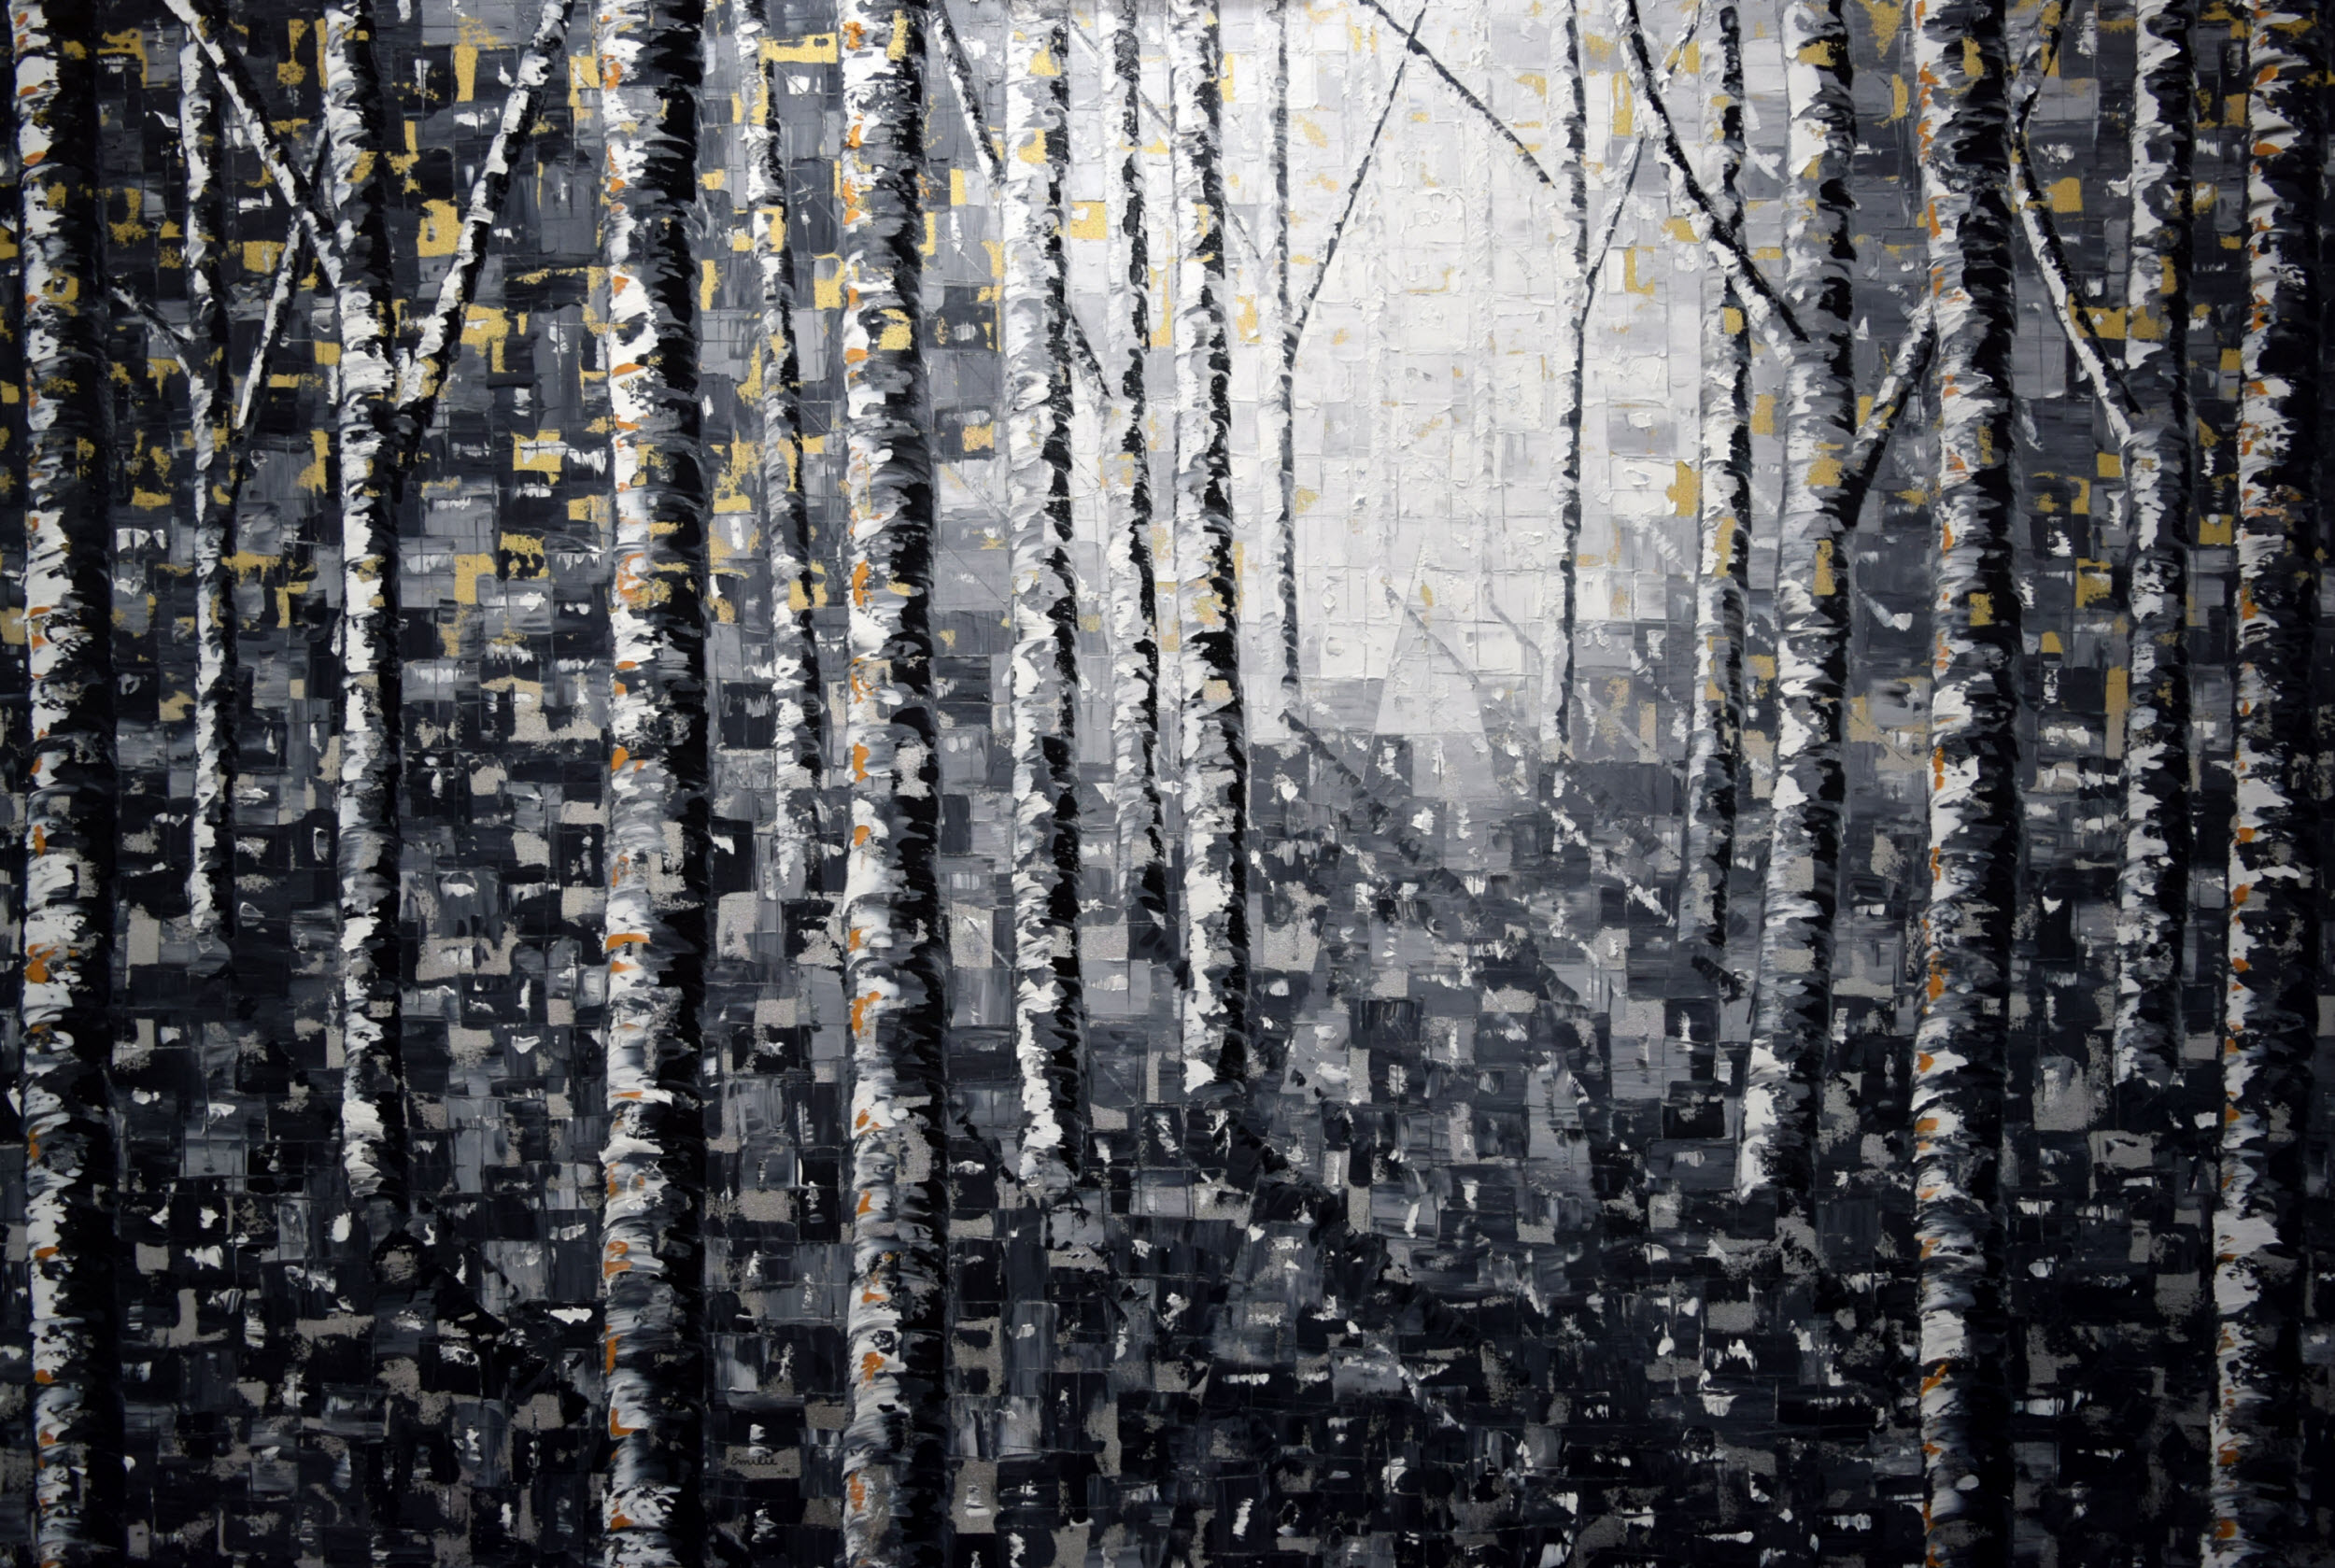 Beadle_Metallic Trees_1.JPG